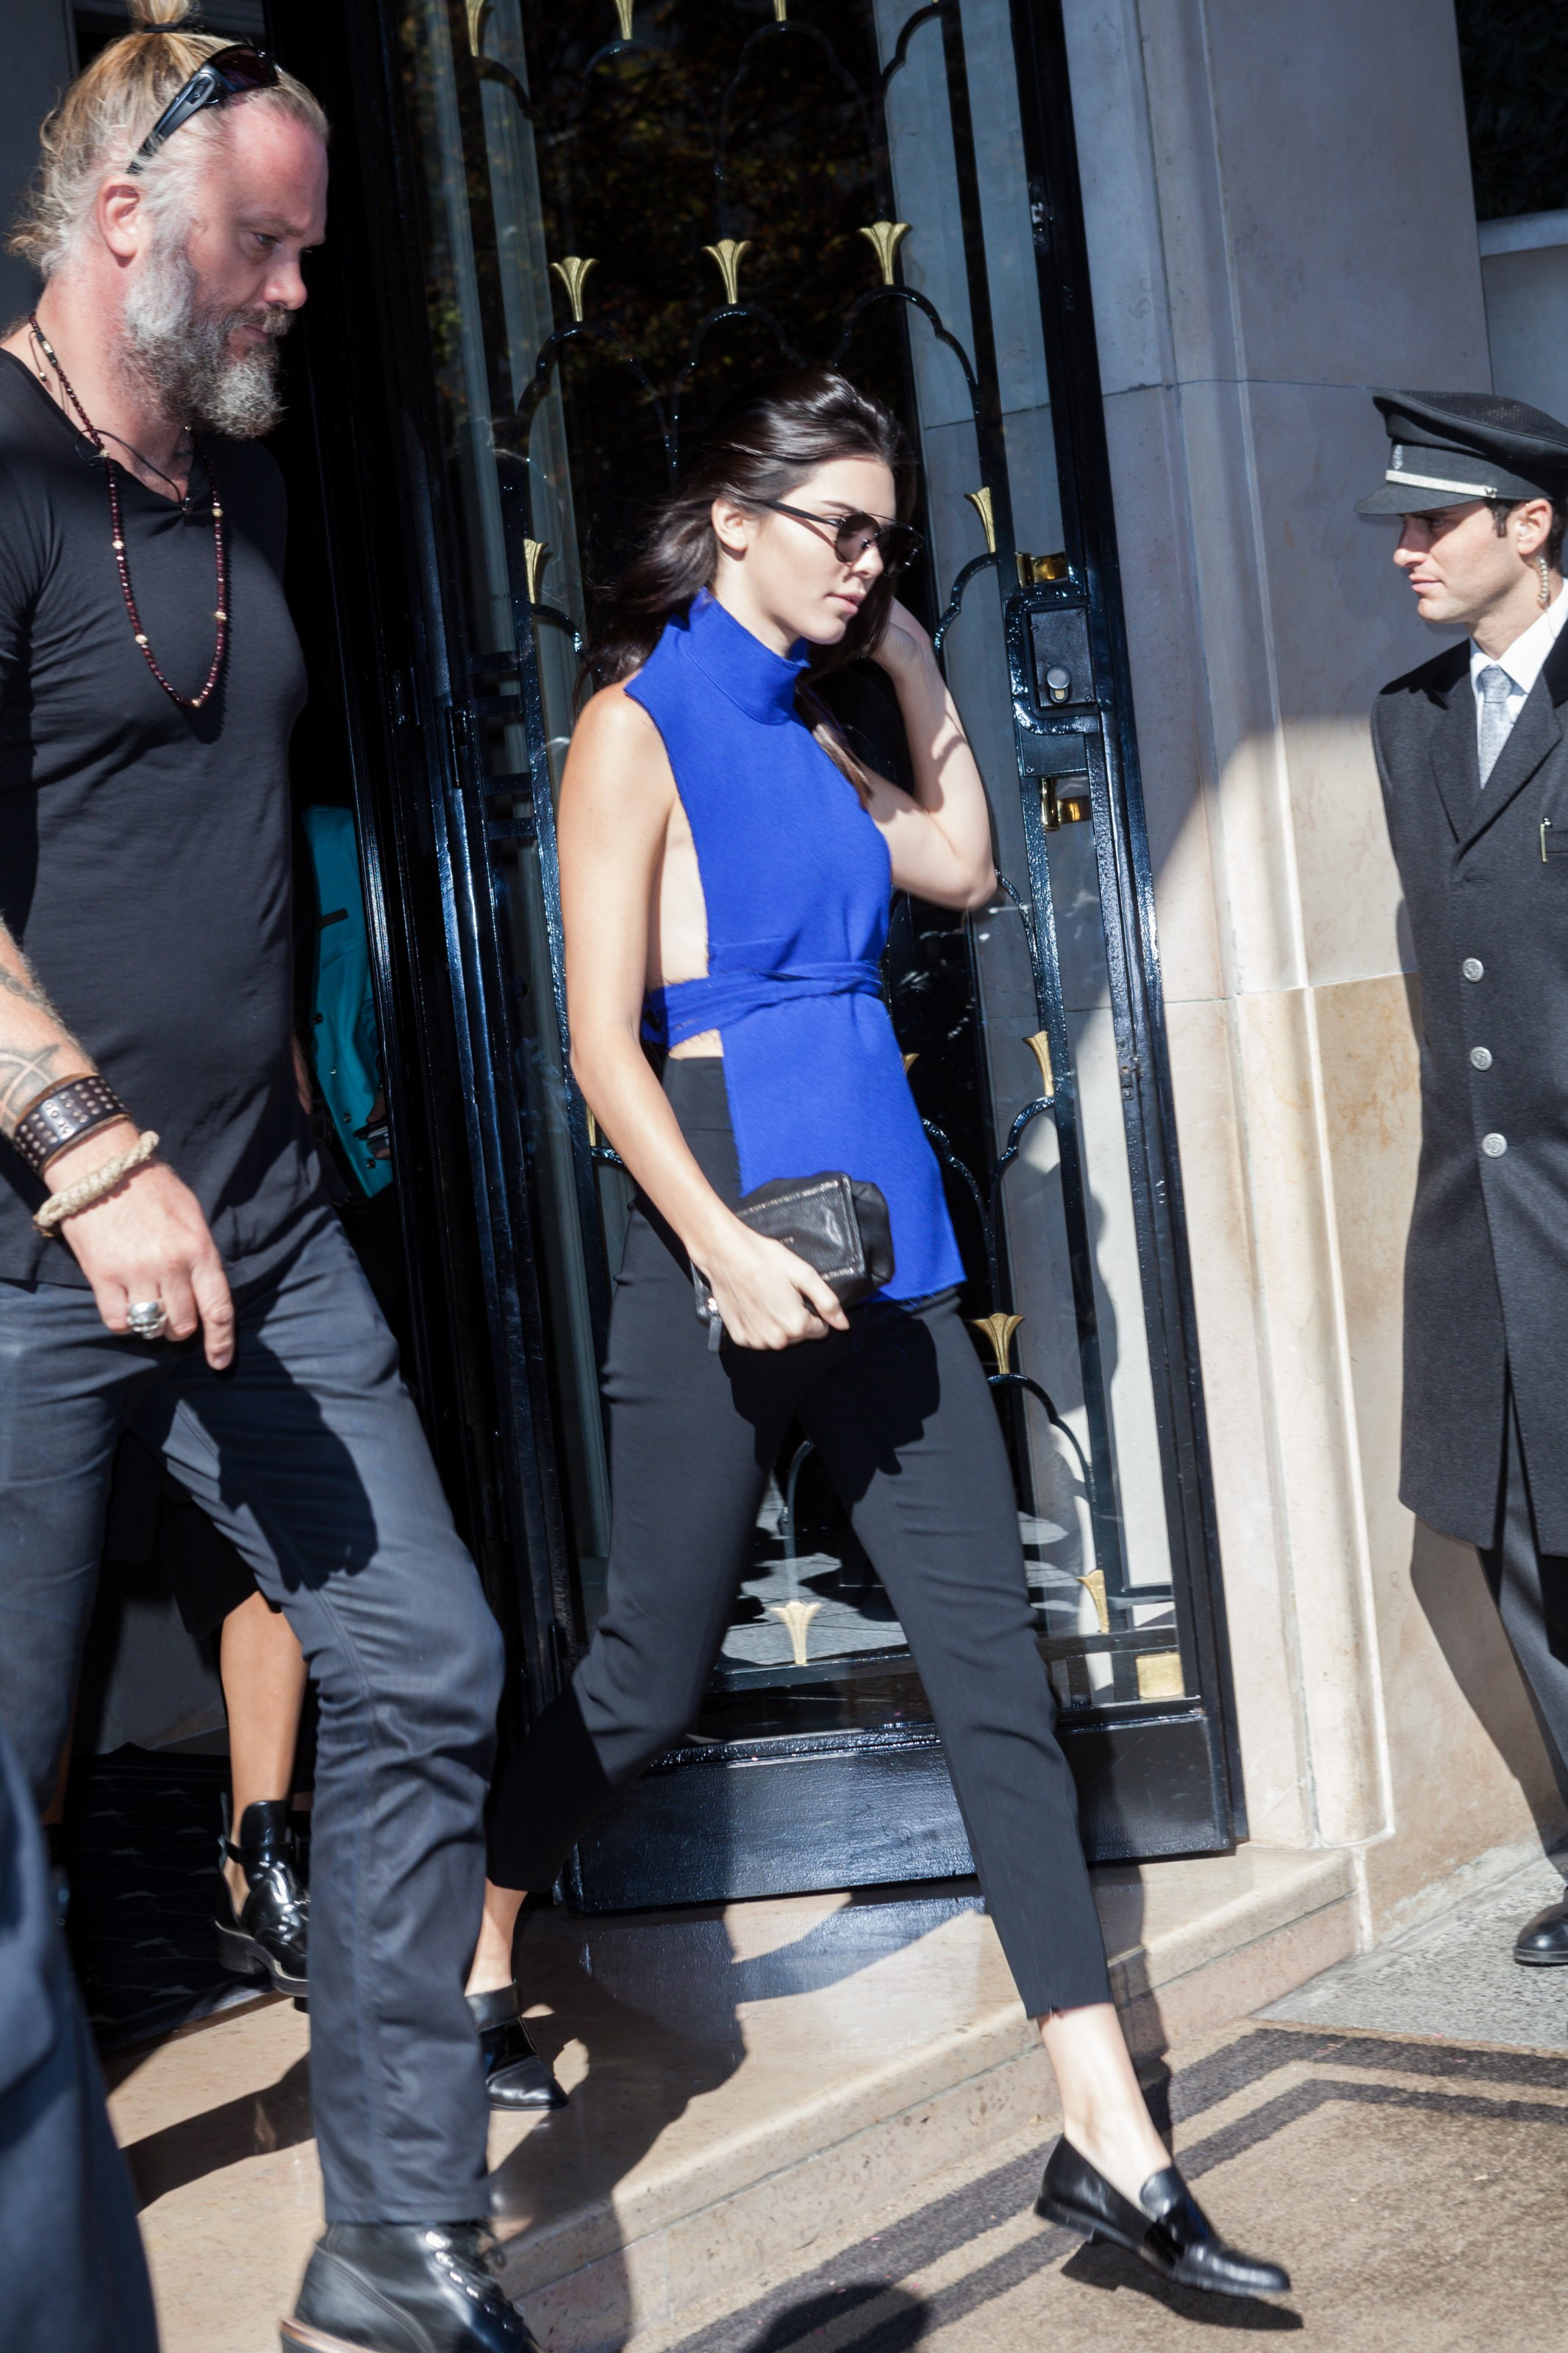 Kendall Jenner leaving the hotel George V in Paris, France on September 30, 2015 as part of Paris Fashion Week. Kendall wearing a blue top and a black pant. Photo by ABACAPRESS.COM